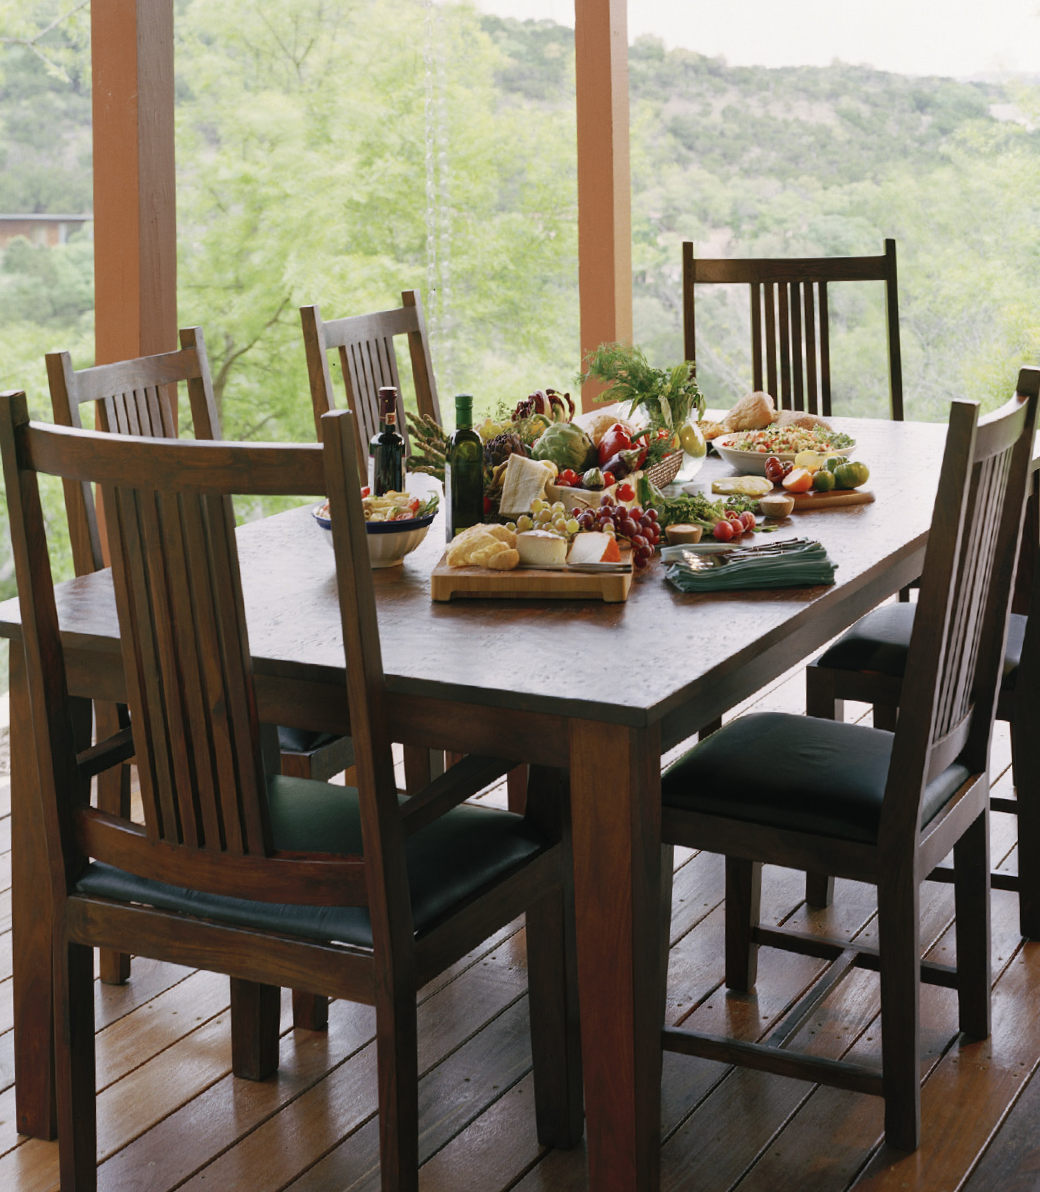 Provence Dining Table 90 Quot Solid Hardwood Top Rustic